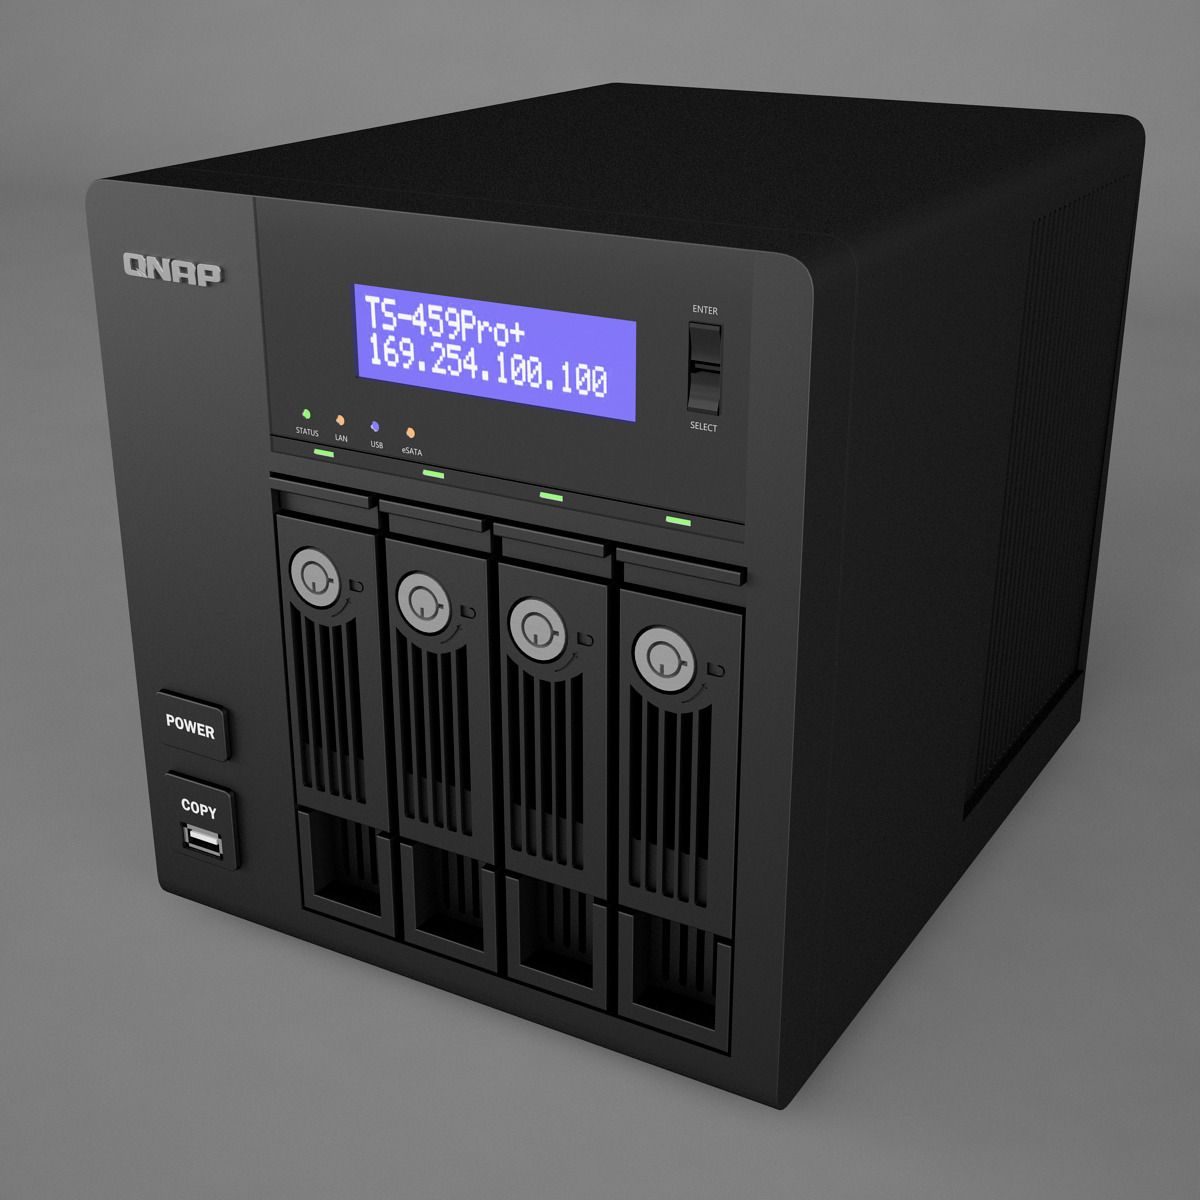 Qnap Network Attached Storage Network Attached Storage Nas Storage Storage